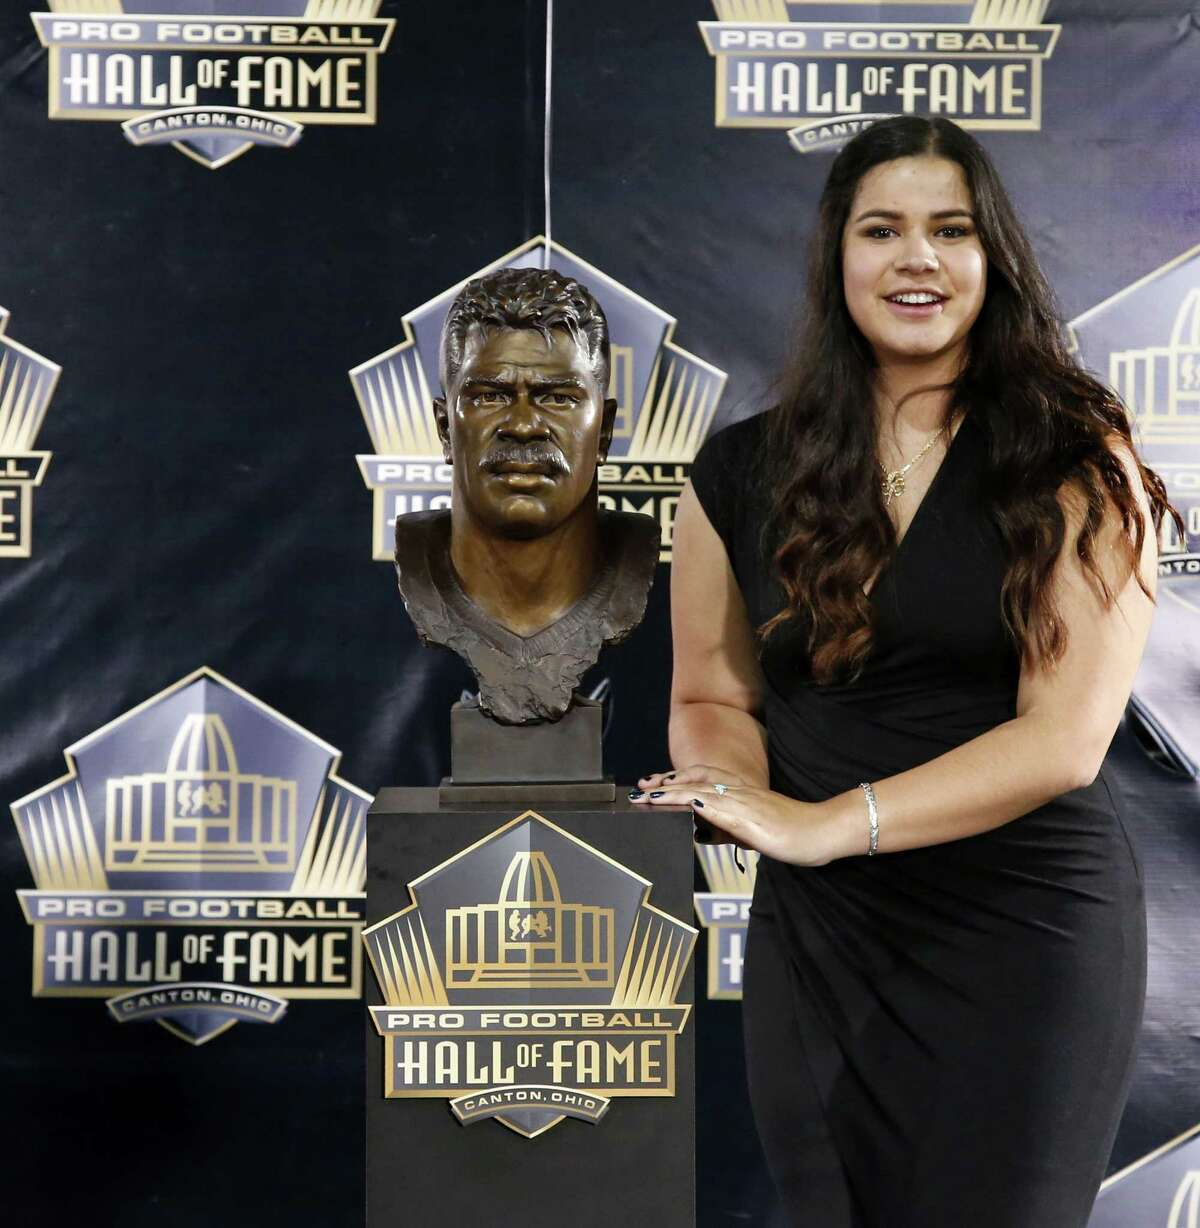 Sydney Seau, daughter of former NFL player Junior Seau, poses with a bust of her father Saturday.